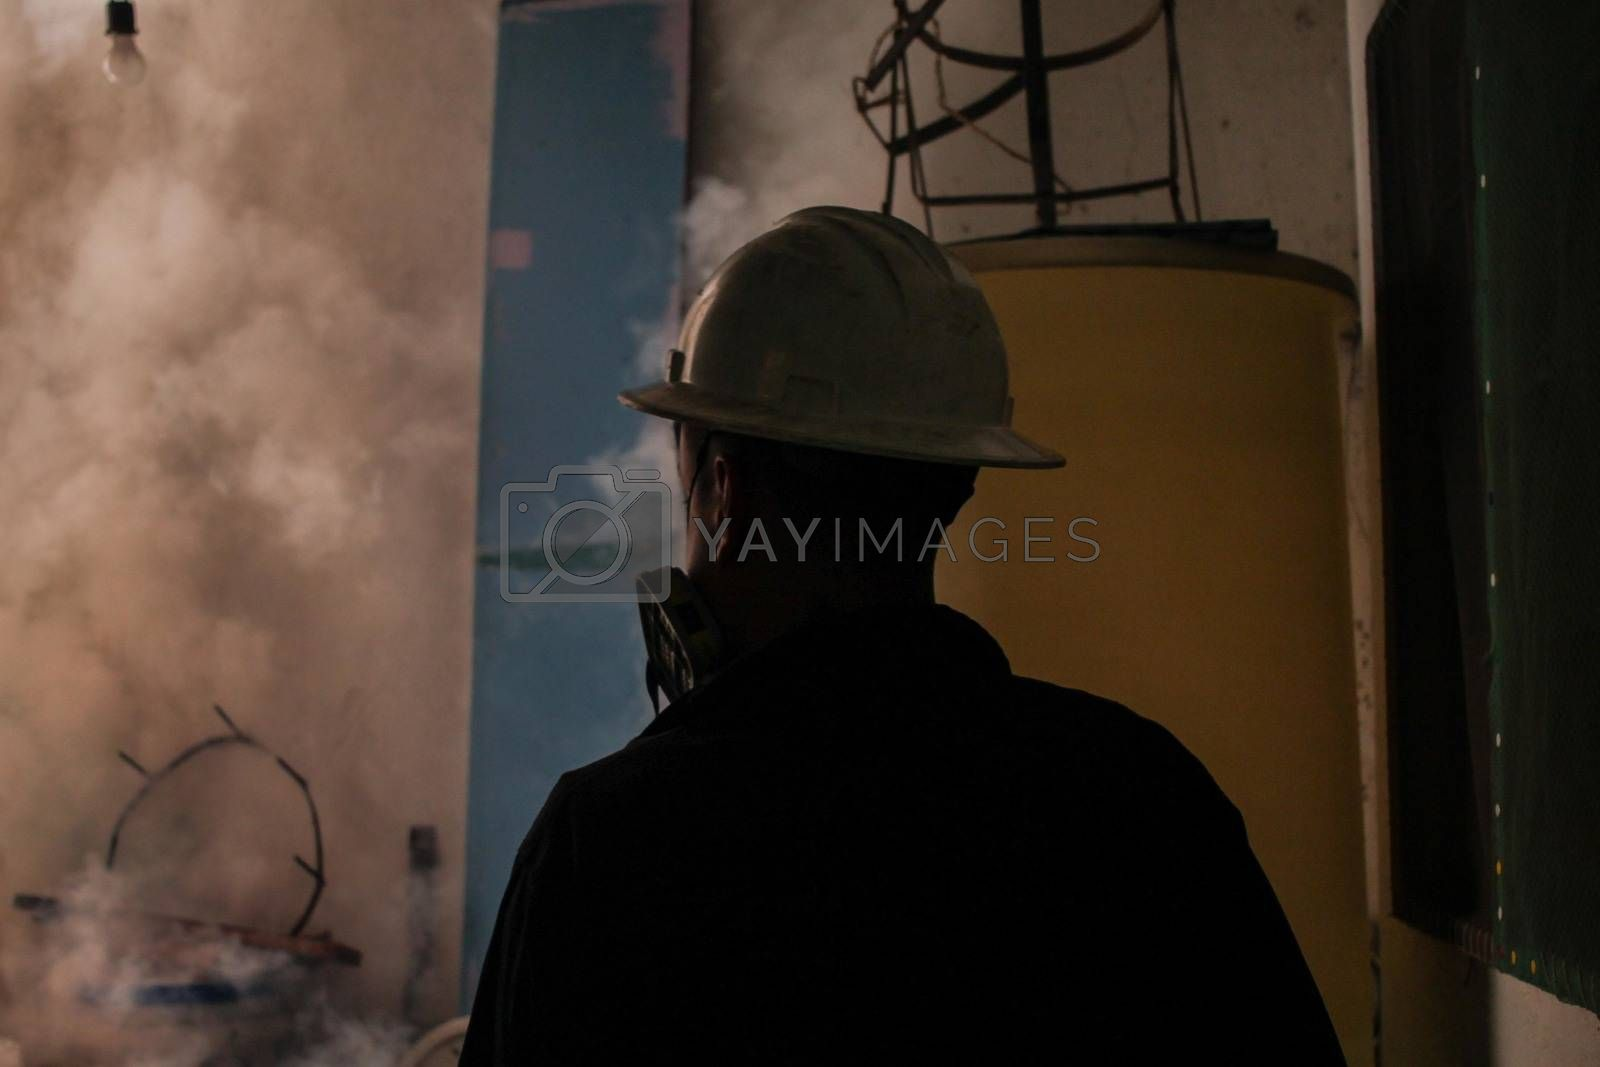 VENEZUELA, Caracas: A member of a fumigation crew works to exterminate Aedes mosquitoes carrying the rapidly spreading Zika virus in the slums of Caracas, Venezuela on February 3, 2016. As of February 4, there have been reports of at least 255 cases of the rare Guillain-Barre syndrome — which causes the immune system to attack the nerves — potentially linked to the Zika virus in Venezuela.